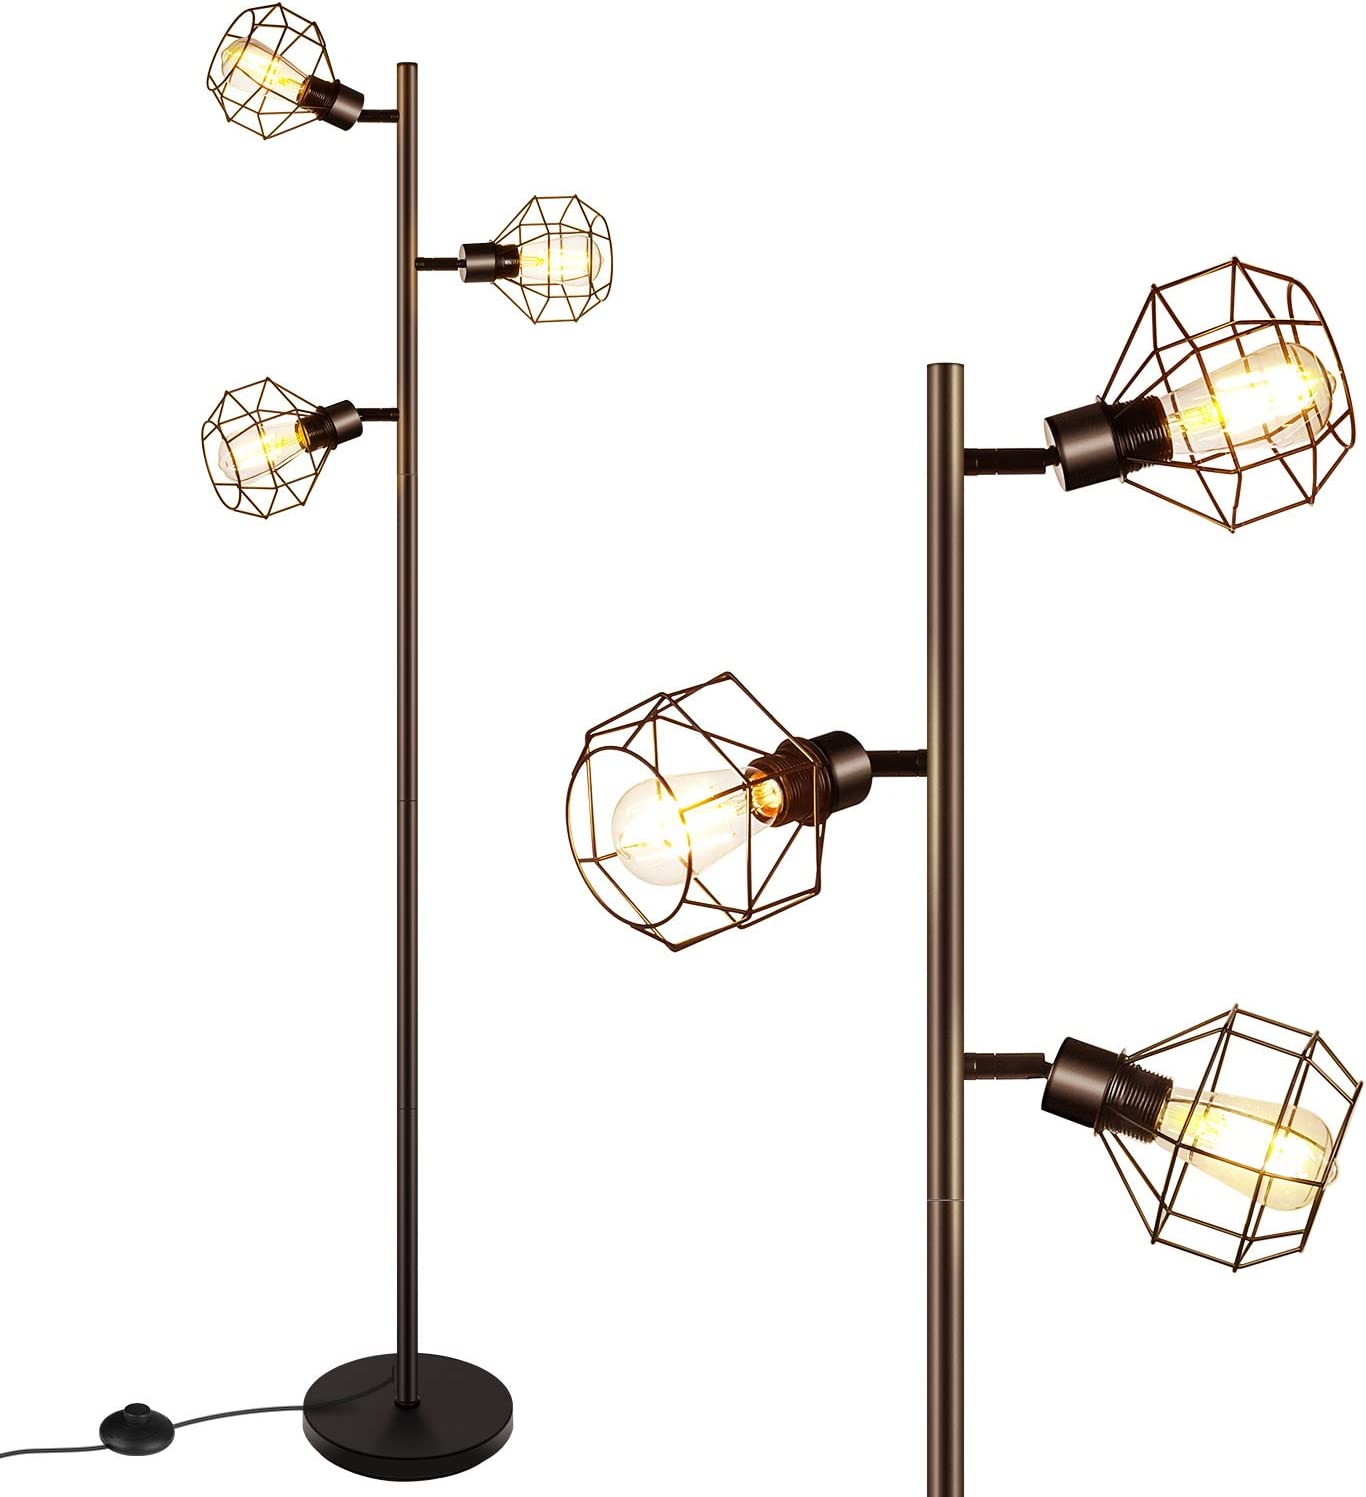 LED Industrial Floor Lamp Standing Adjustable Heads with 3 Overseas parallel Raleigh Mall import regular item